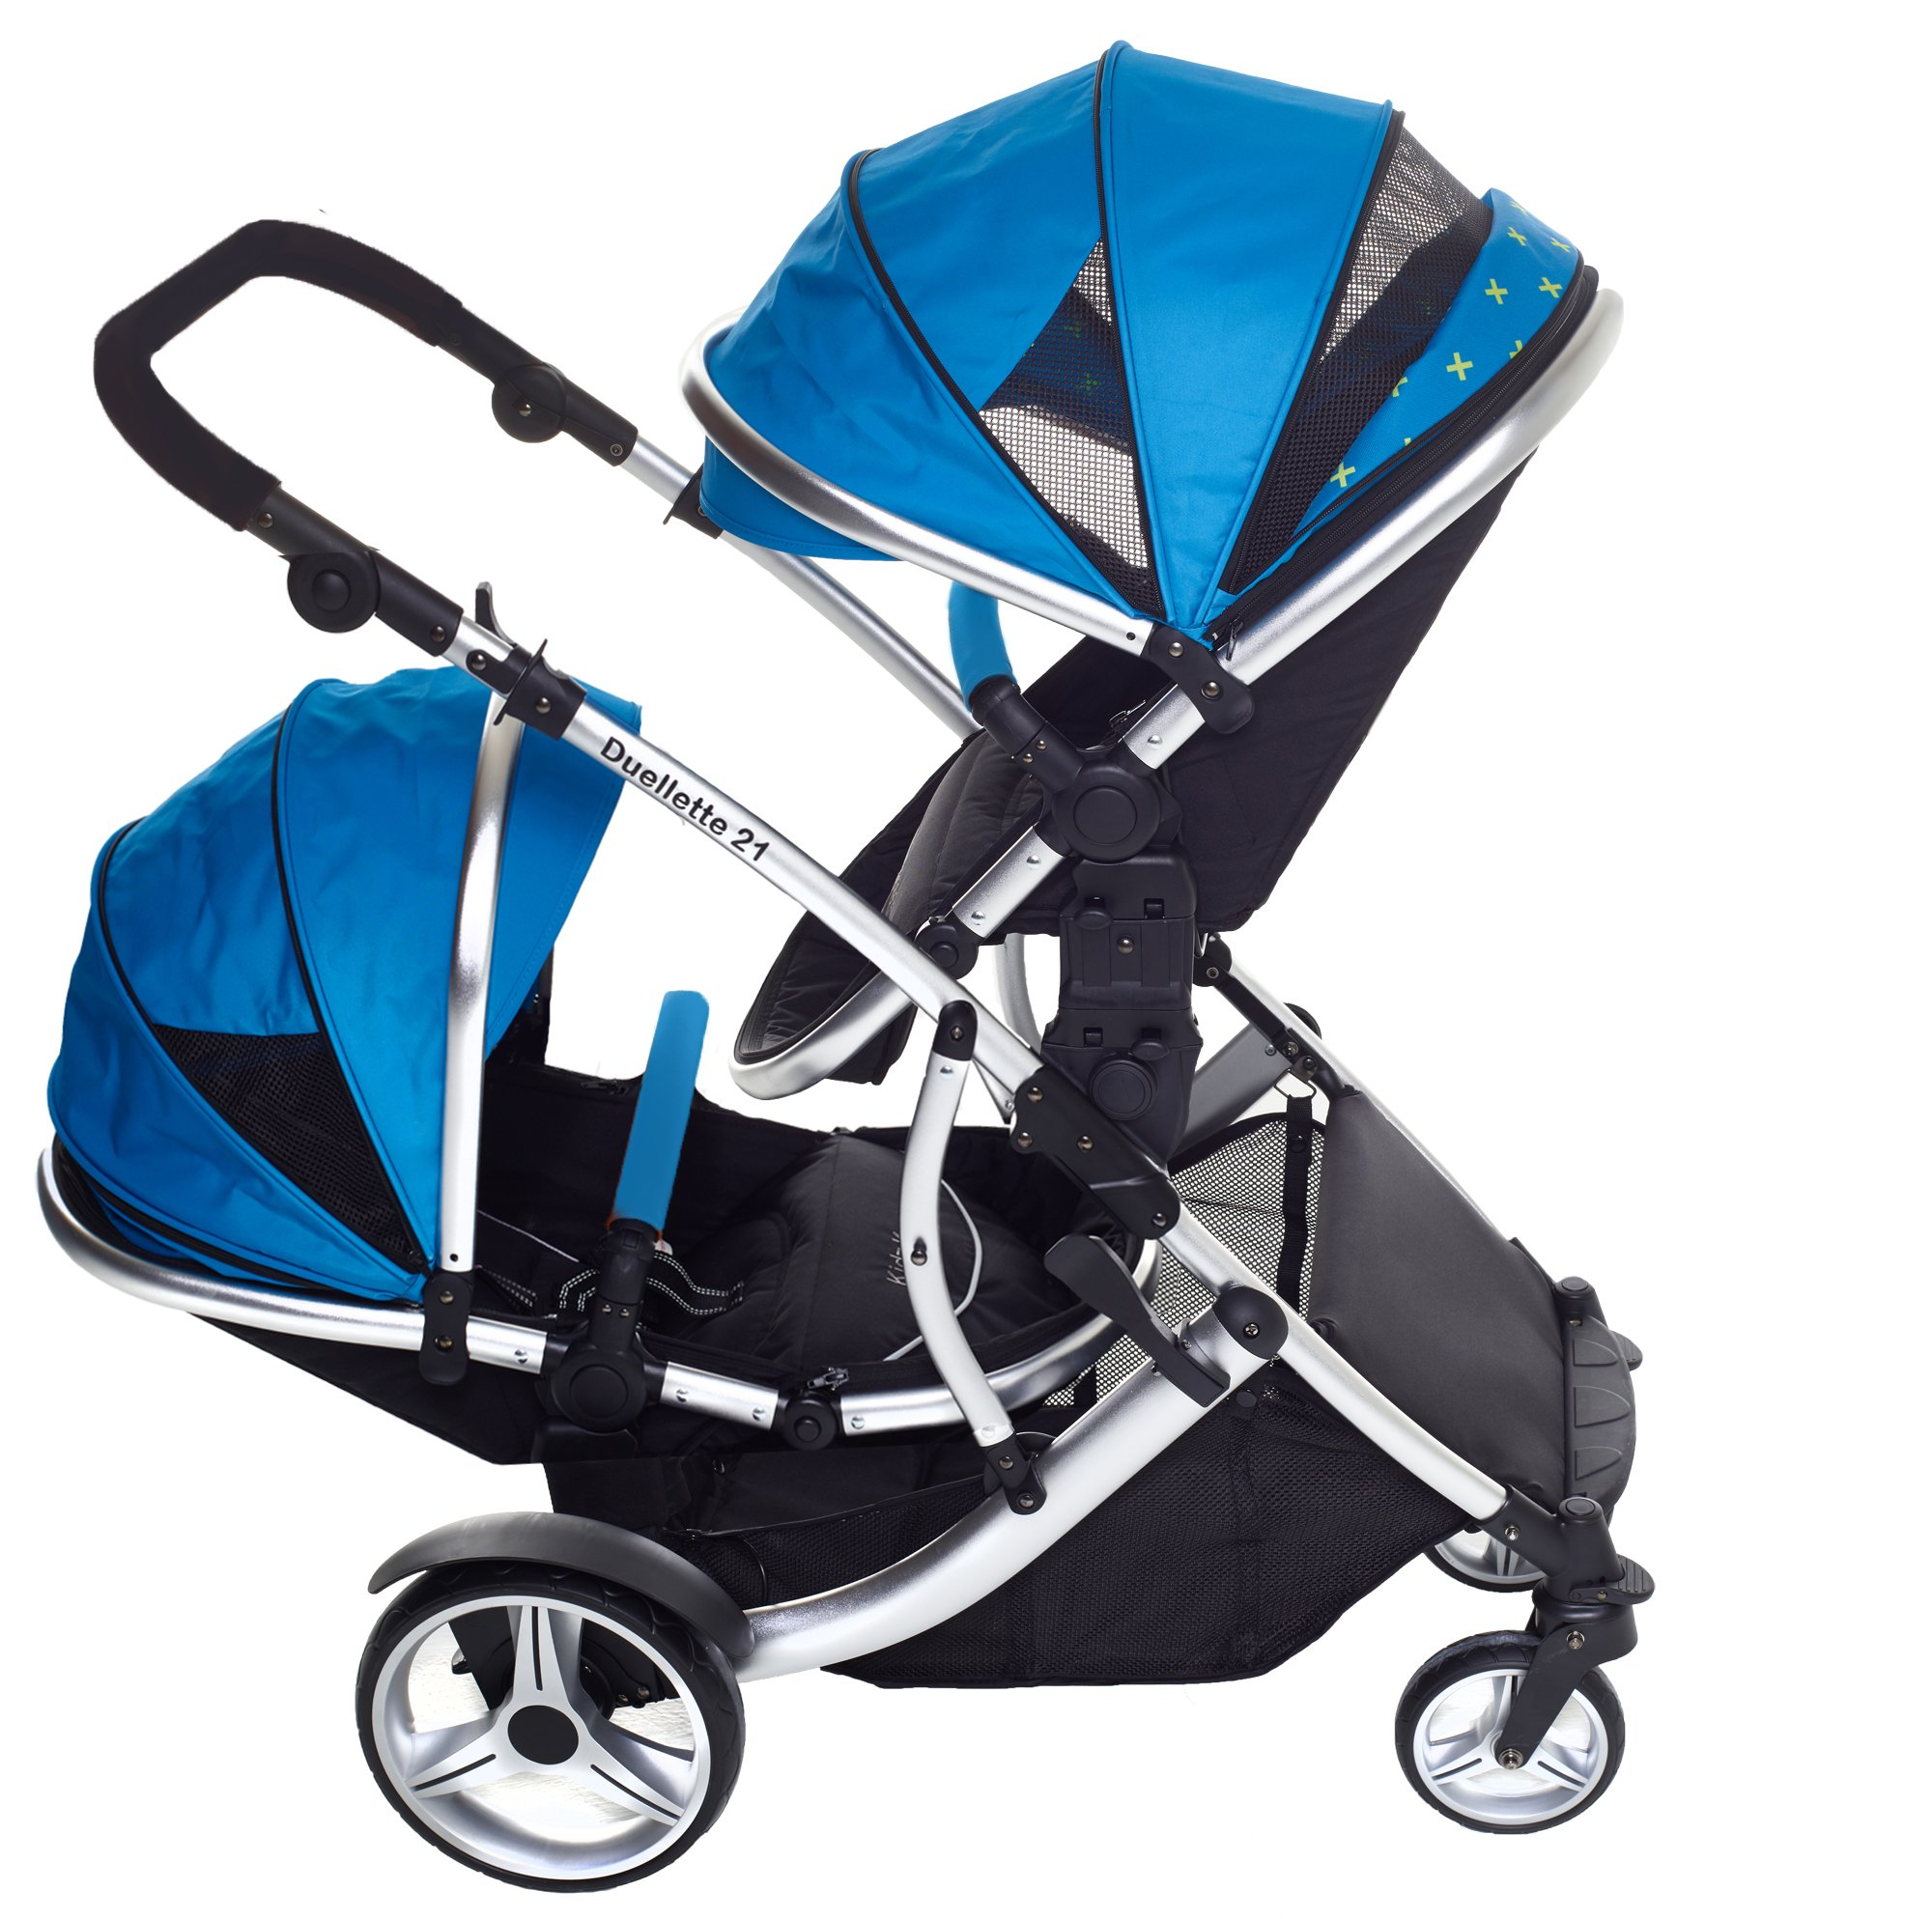 Duellette 21 BS Twin Buggy with Changing Bag and Accessories, Raincovers and 2 Footmuffs Teal Mist Kids Kargo Various seat positions. Both seats can face mum (ideal for twins) Suitability Newborn Twins (if used with car seats) or Newborn/toddler. Accommodates 1 or 2 car seats 2